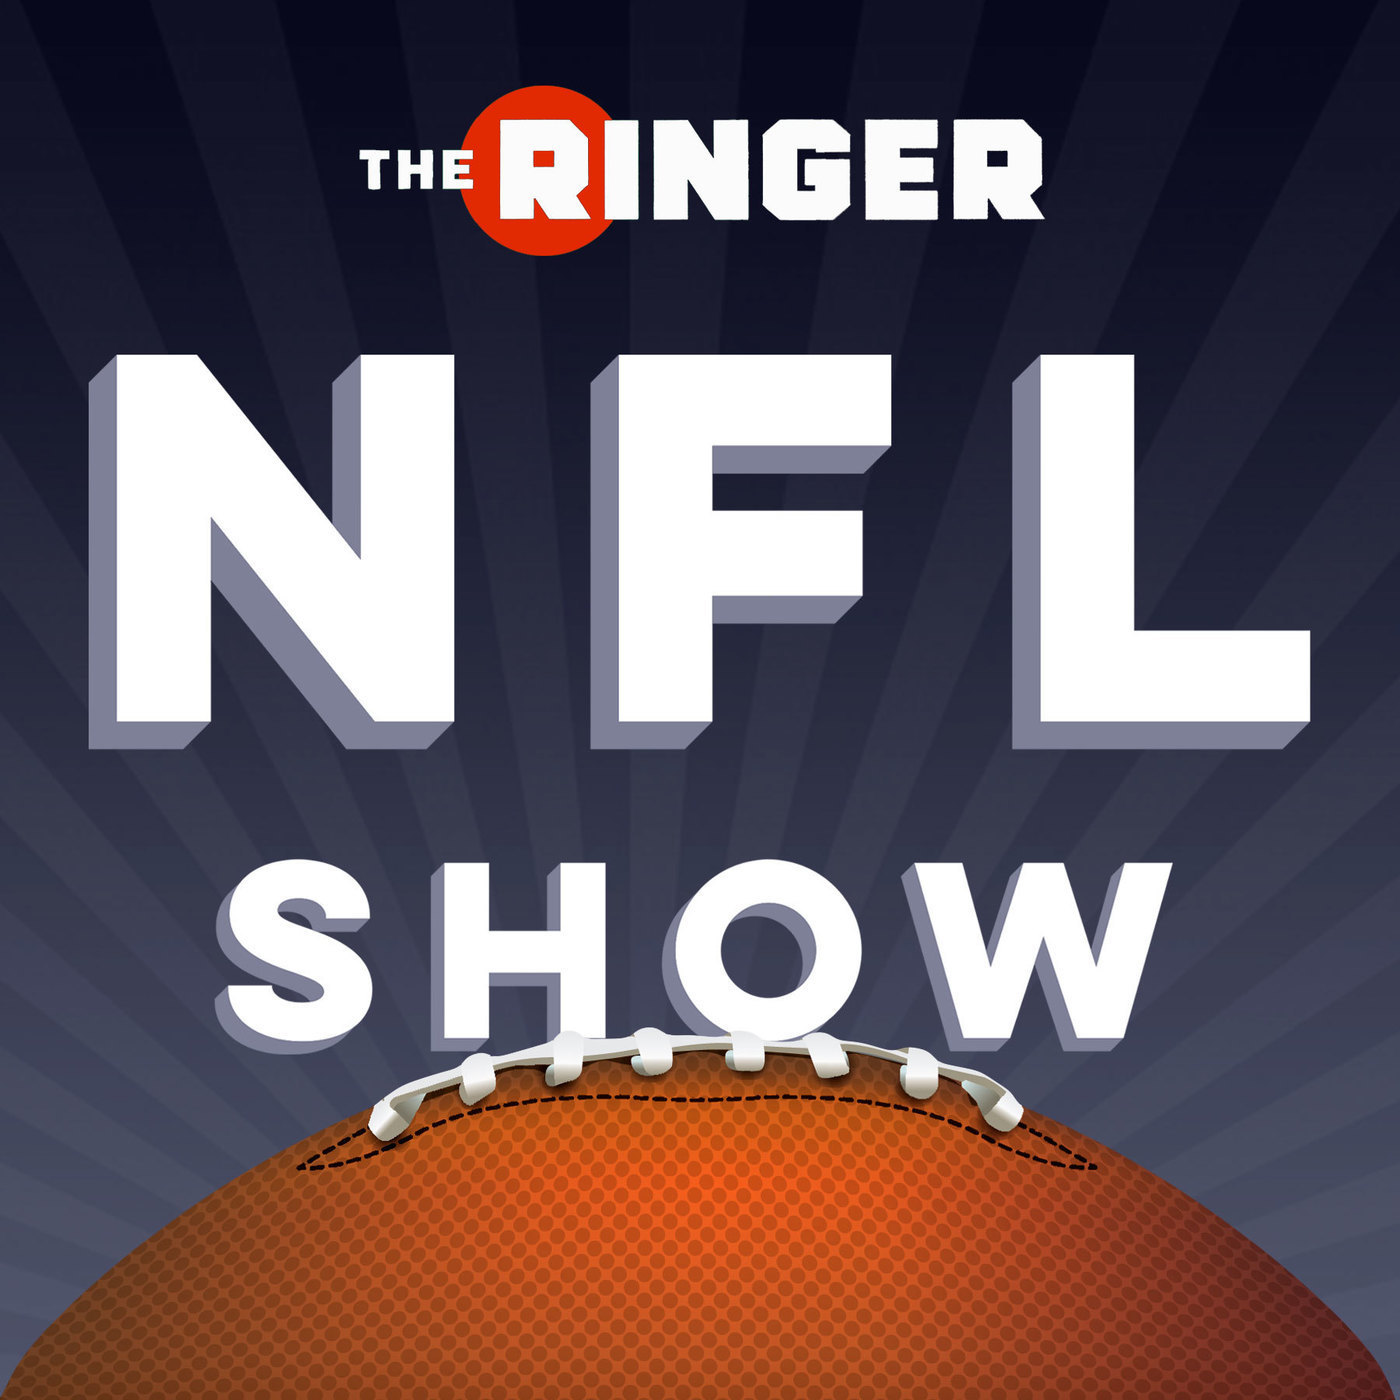 Luke Kuechly's Retirement, LSU's Joe Brady to the Panthers, and the Conference Championships | The Ringer NFL Show